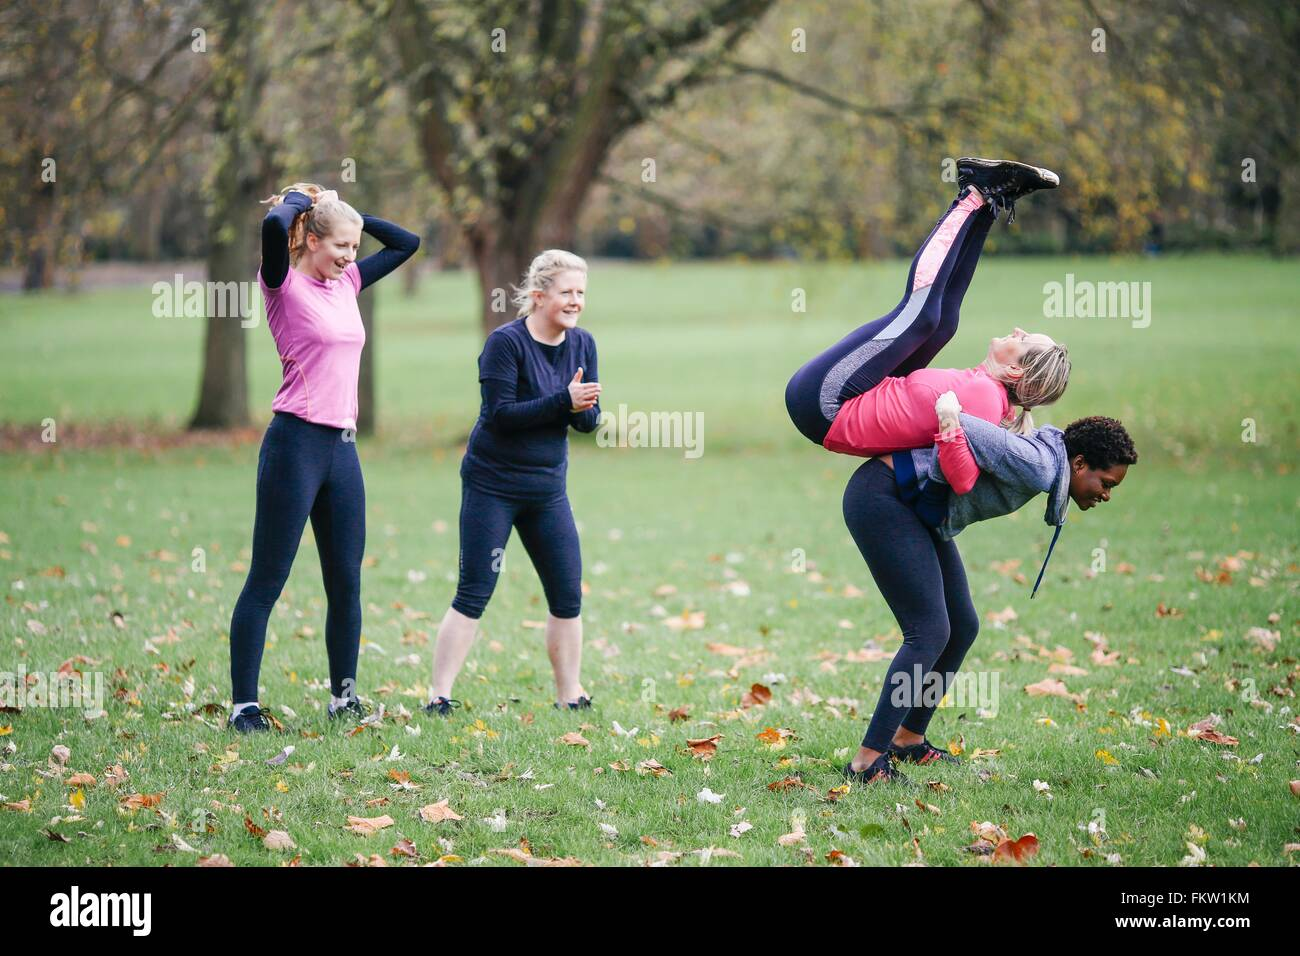 Women and teenager doing warm up exercises in park - Stock Image